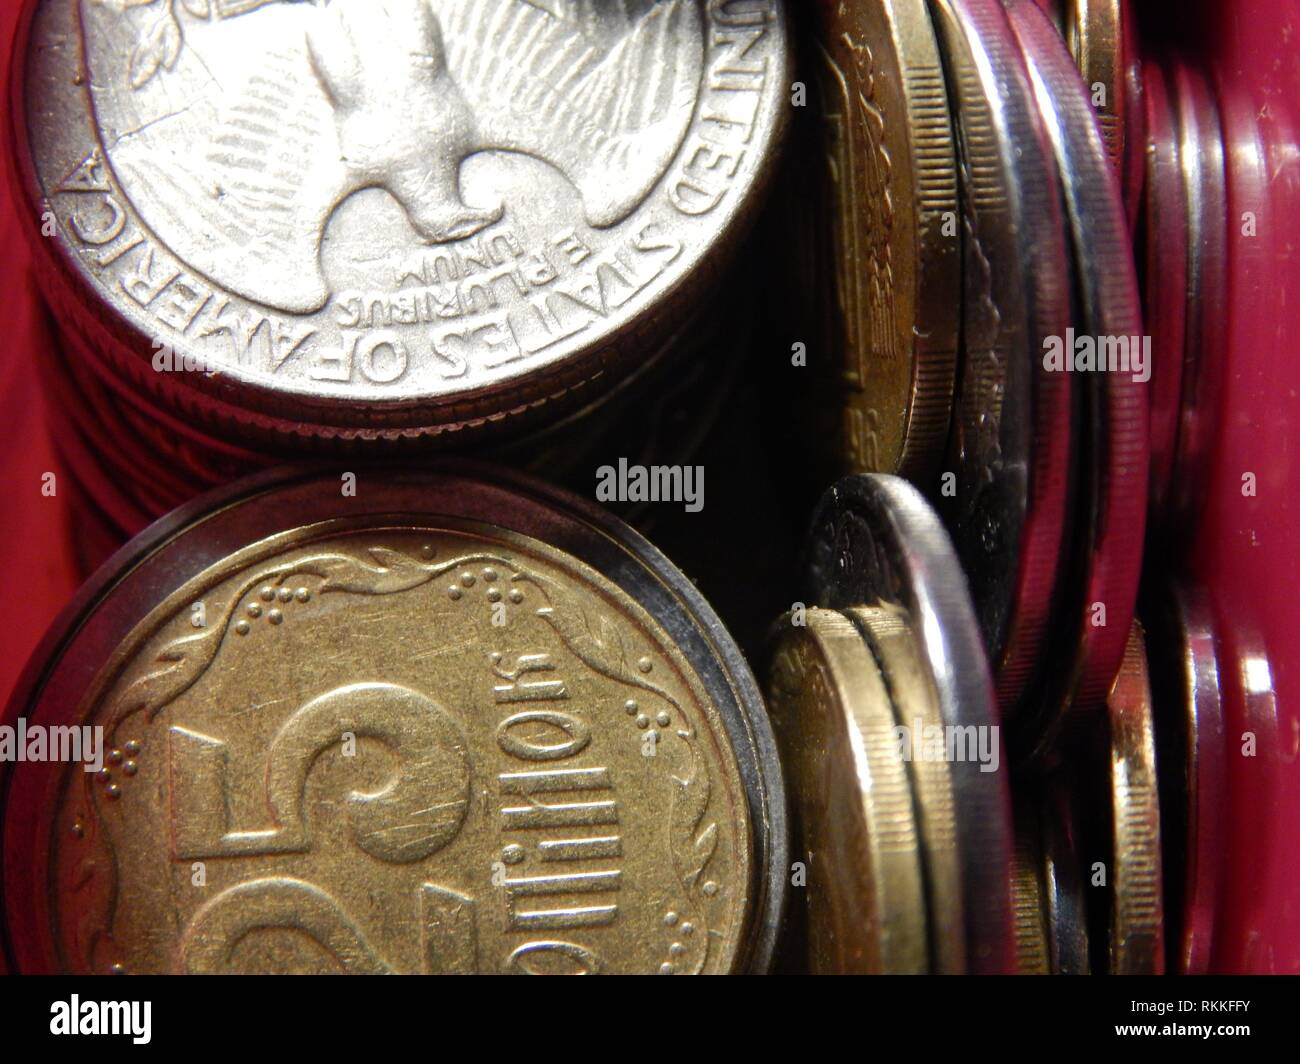 Numismatics, collecting coins of different countries and denominations. - Stock Image